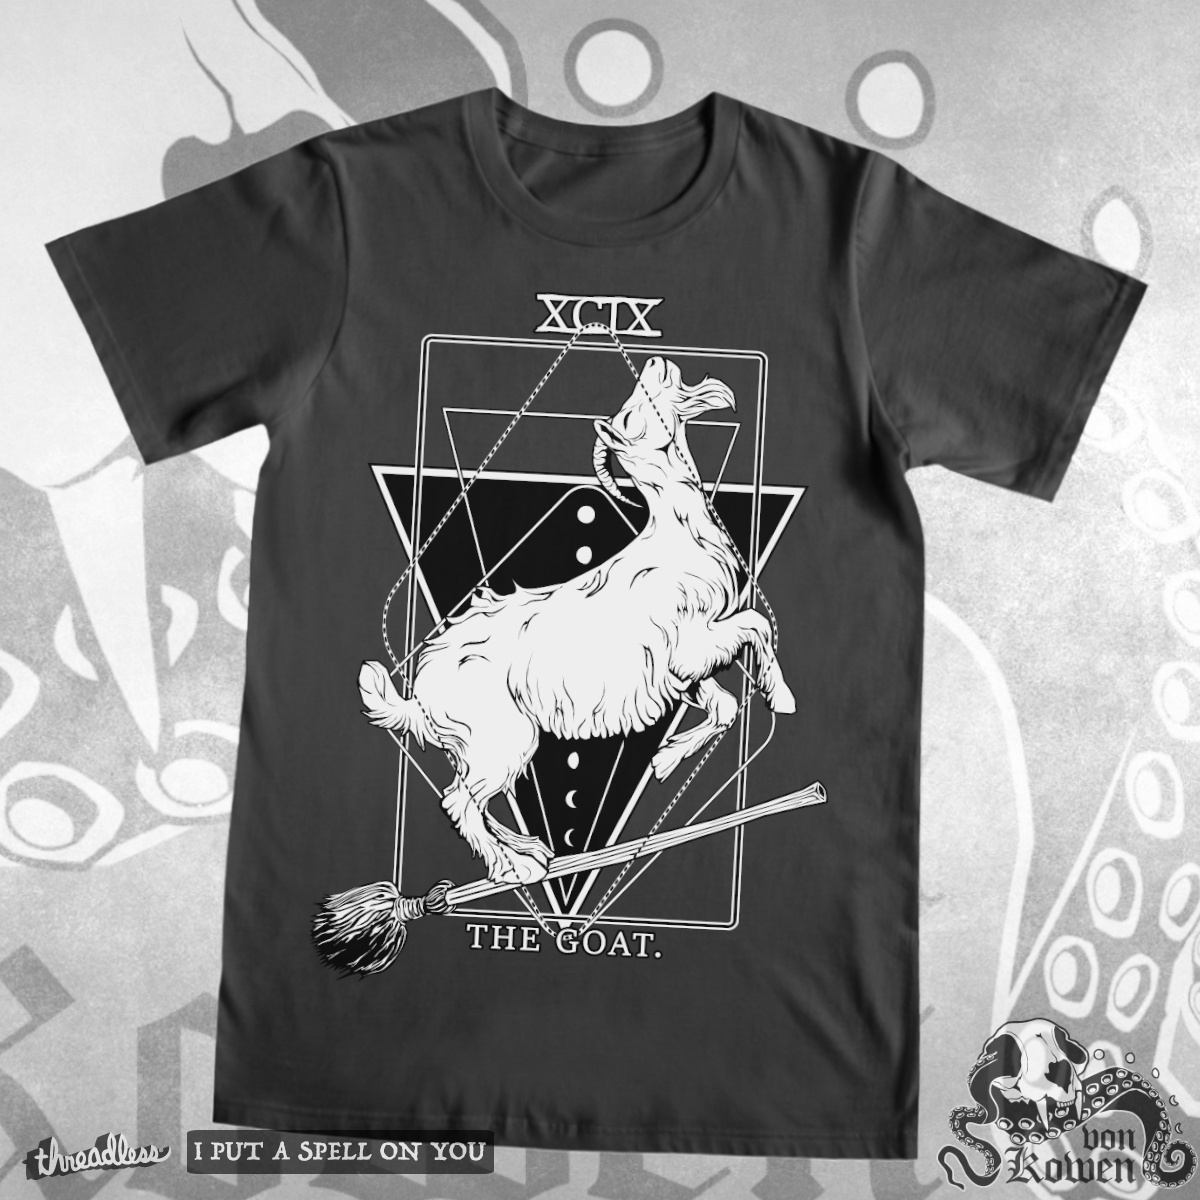 The Goat (on witches broom), a cool t-shirt design